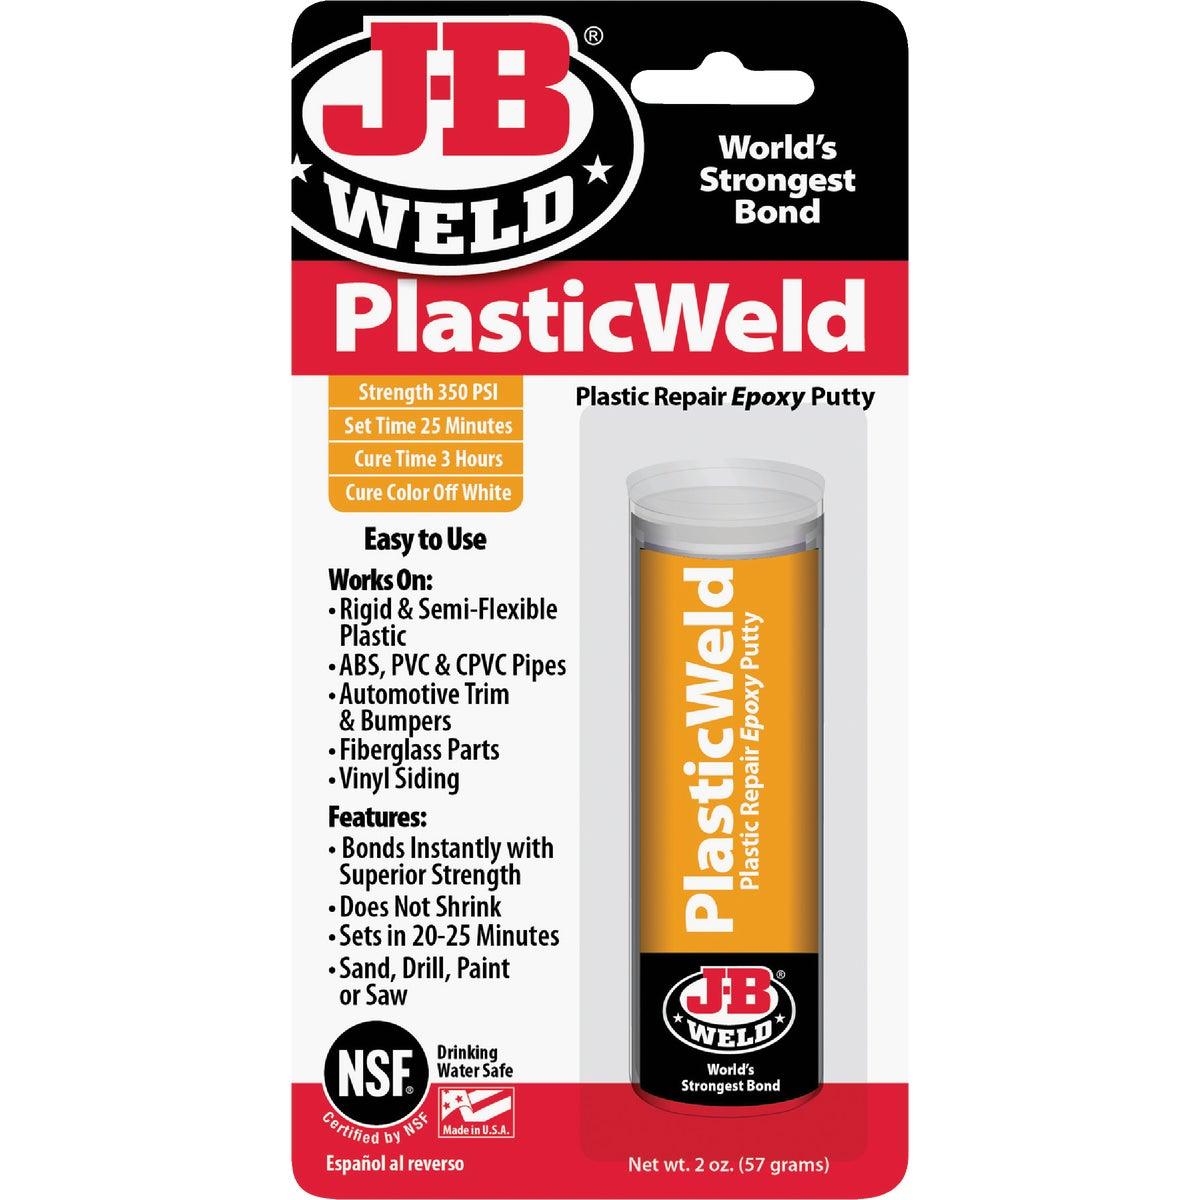 2OZ KWIKPLASTIC EPOXY - 8237 by J B Weld Co